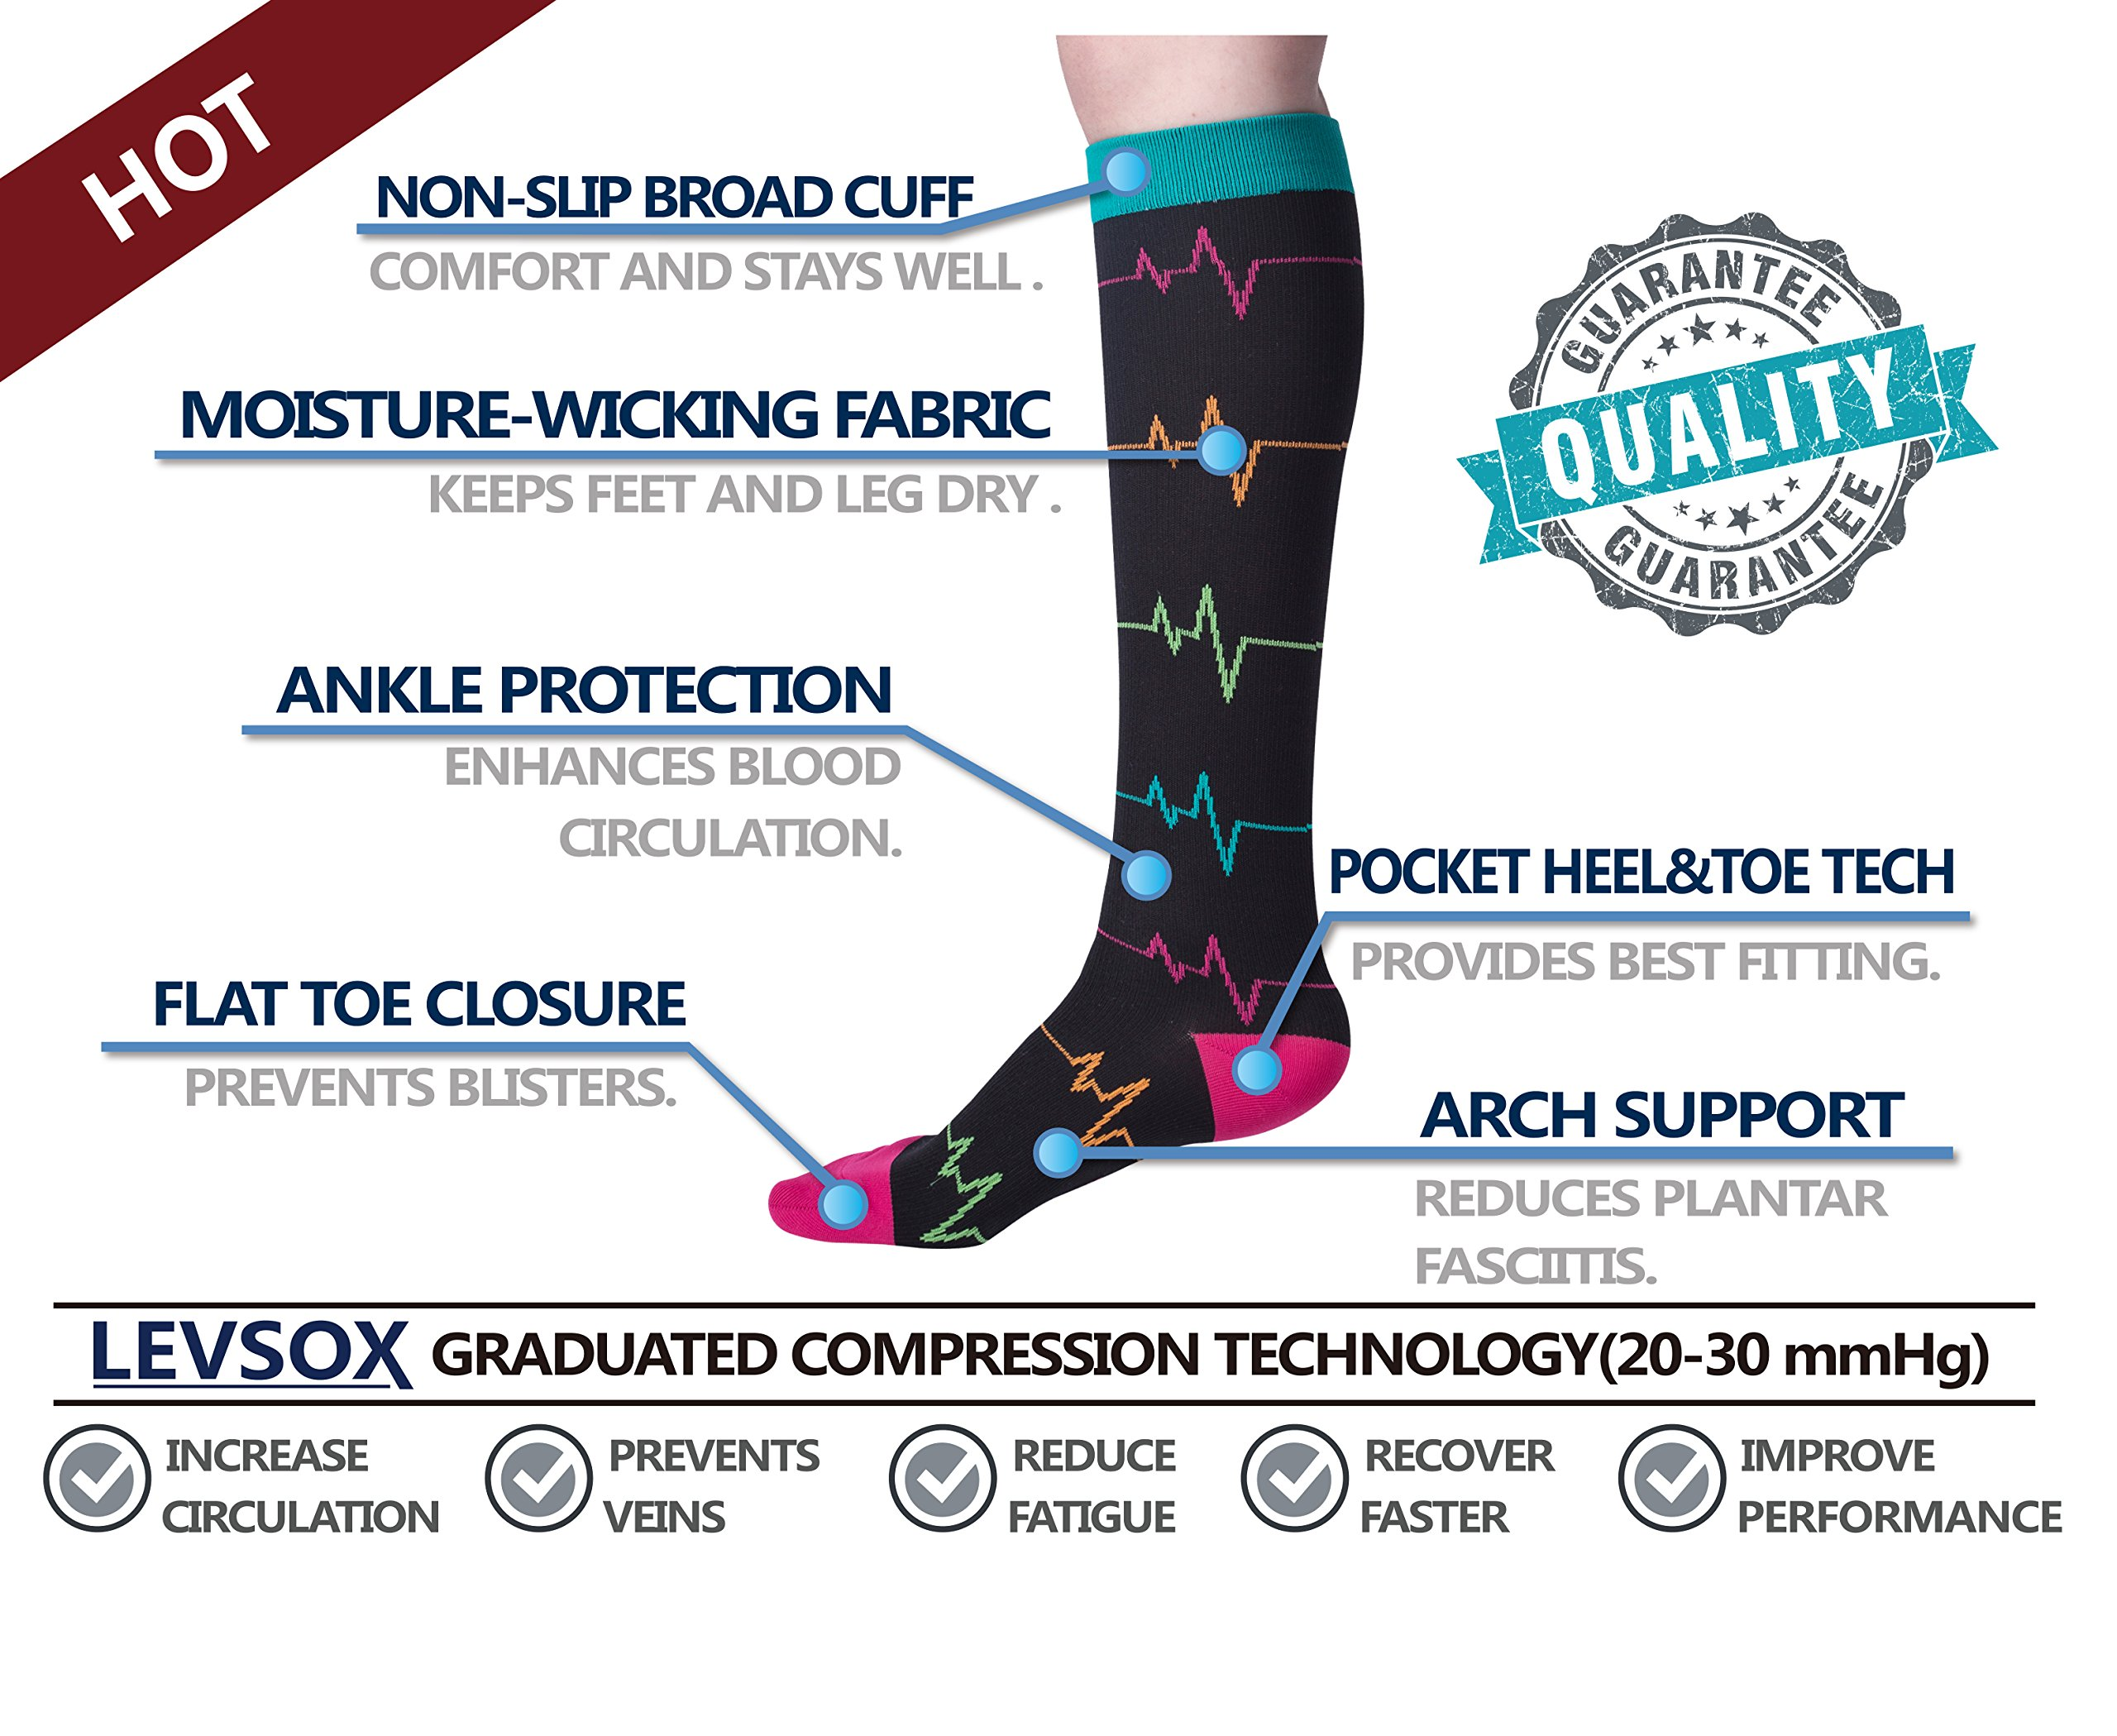 3 Pairs Compression Socks for Nurse(Women)|20-30mmHg Graduated Knee High Stocking |Anti Fatigue & Prevent Swelling in 12h Shift by LEVSOX (Image #5)